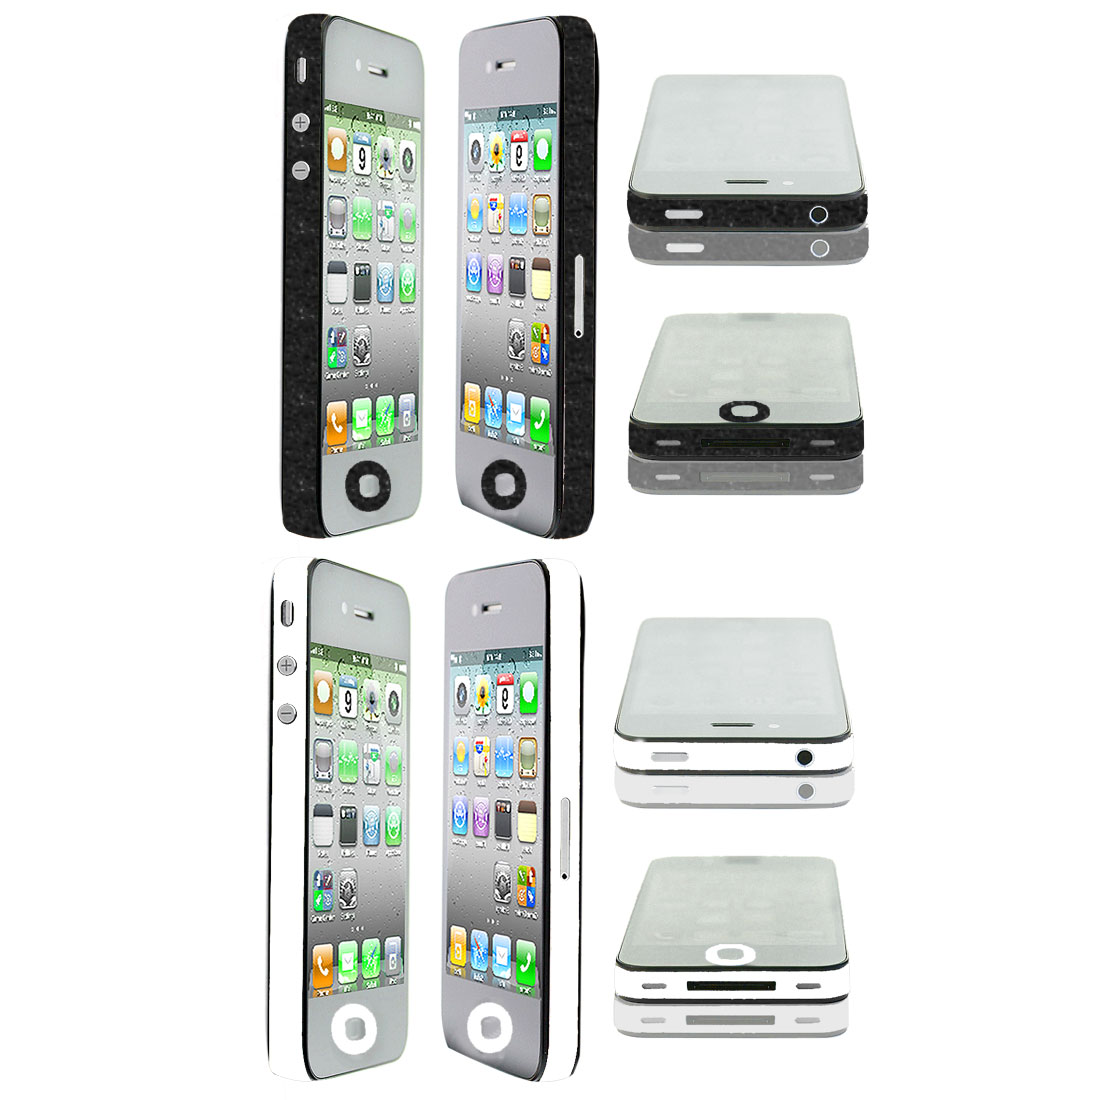 White Black Edge Wrap Sticker Decal Cover Decor 2 Pcs for iPhone 4 4G 4S 4GS